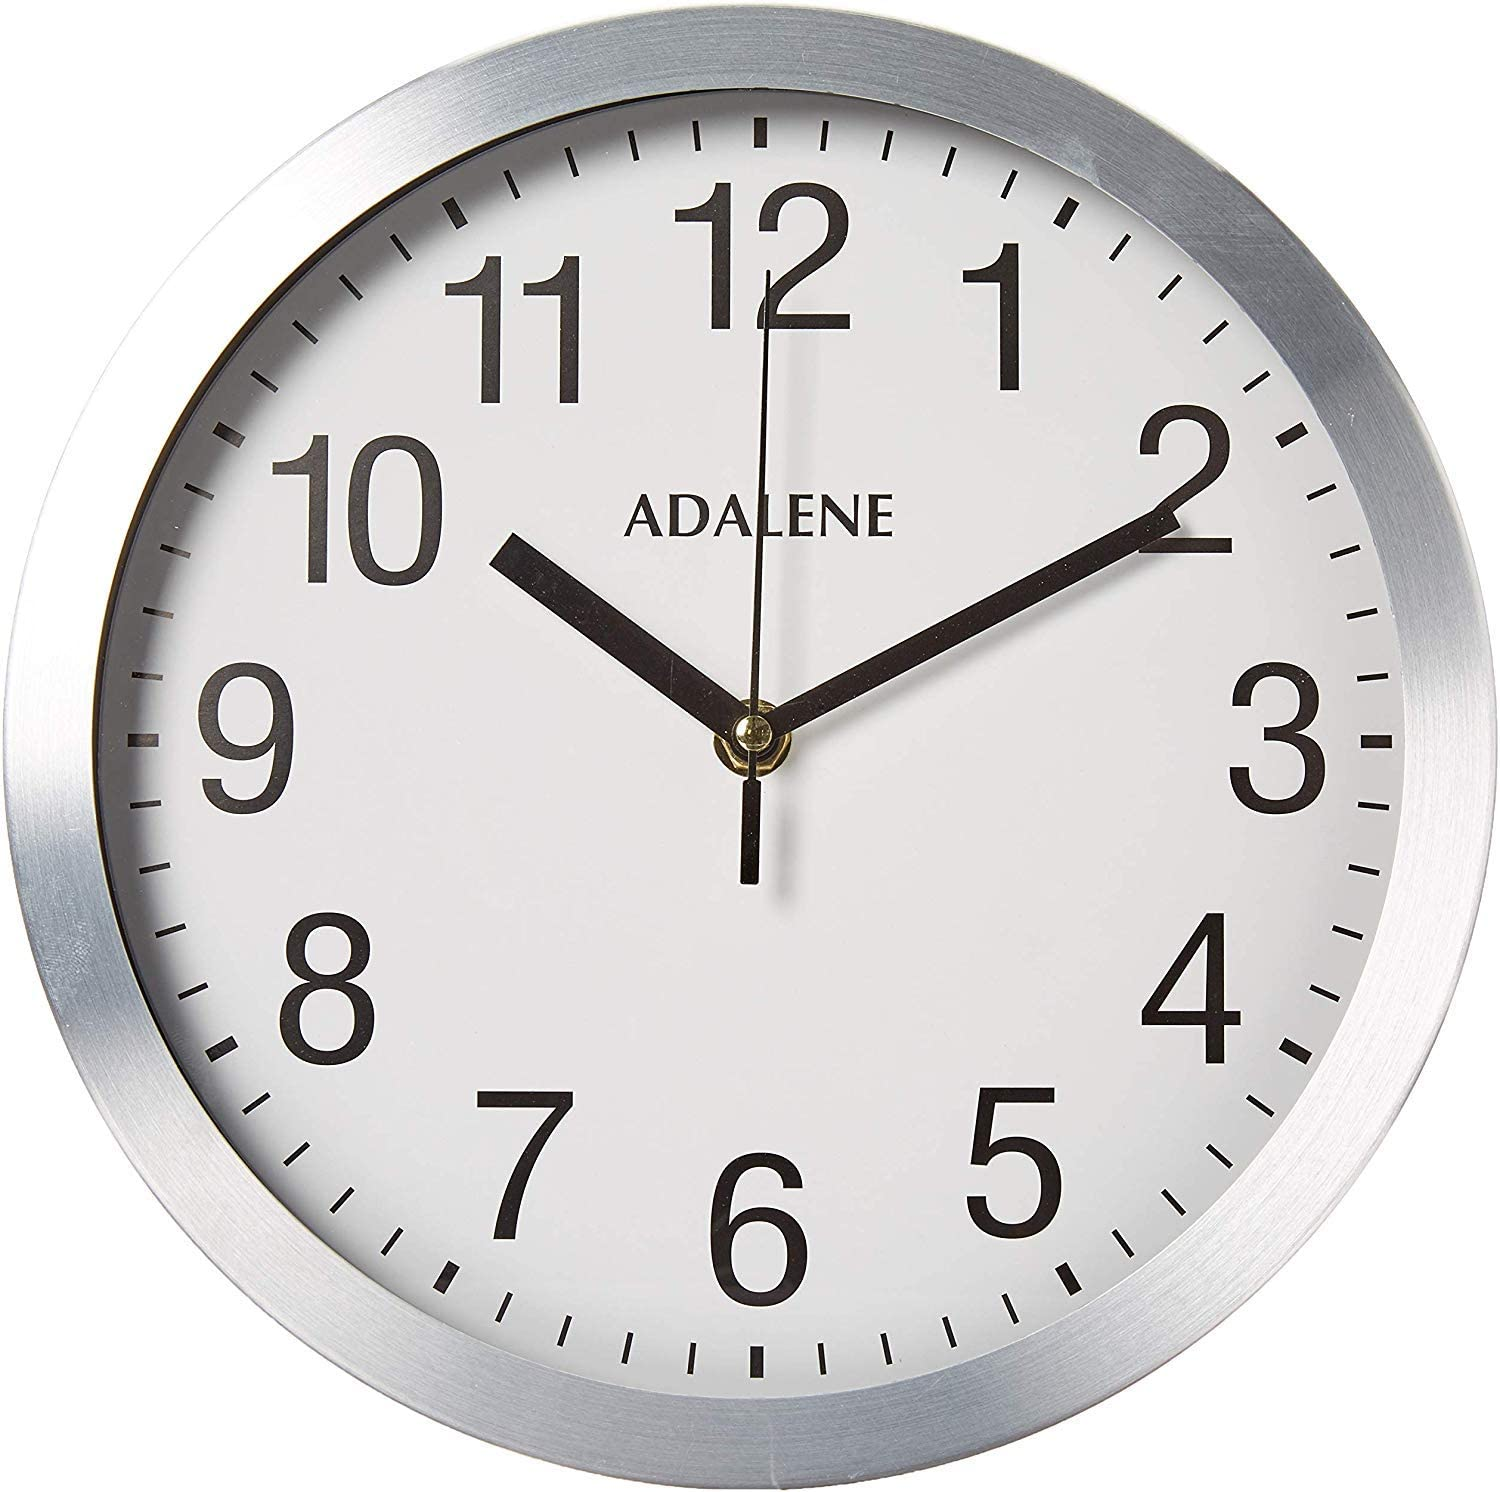 Adalene Modern Metal Wall Clock Silent 10 Inch Analog Wall Clocks Battery Operated Non Ticking White Face Aluminum Wall Clocks Decorative Living Room Décor Kitchen Bedroom Bathroom Office Amazon Ca Home